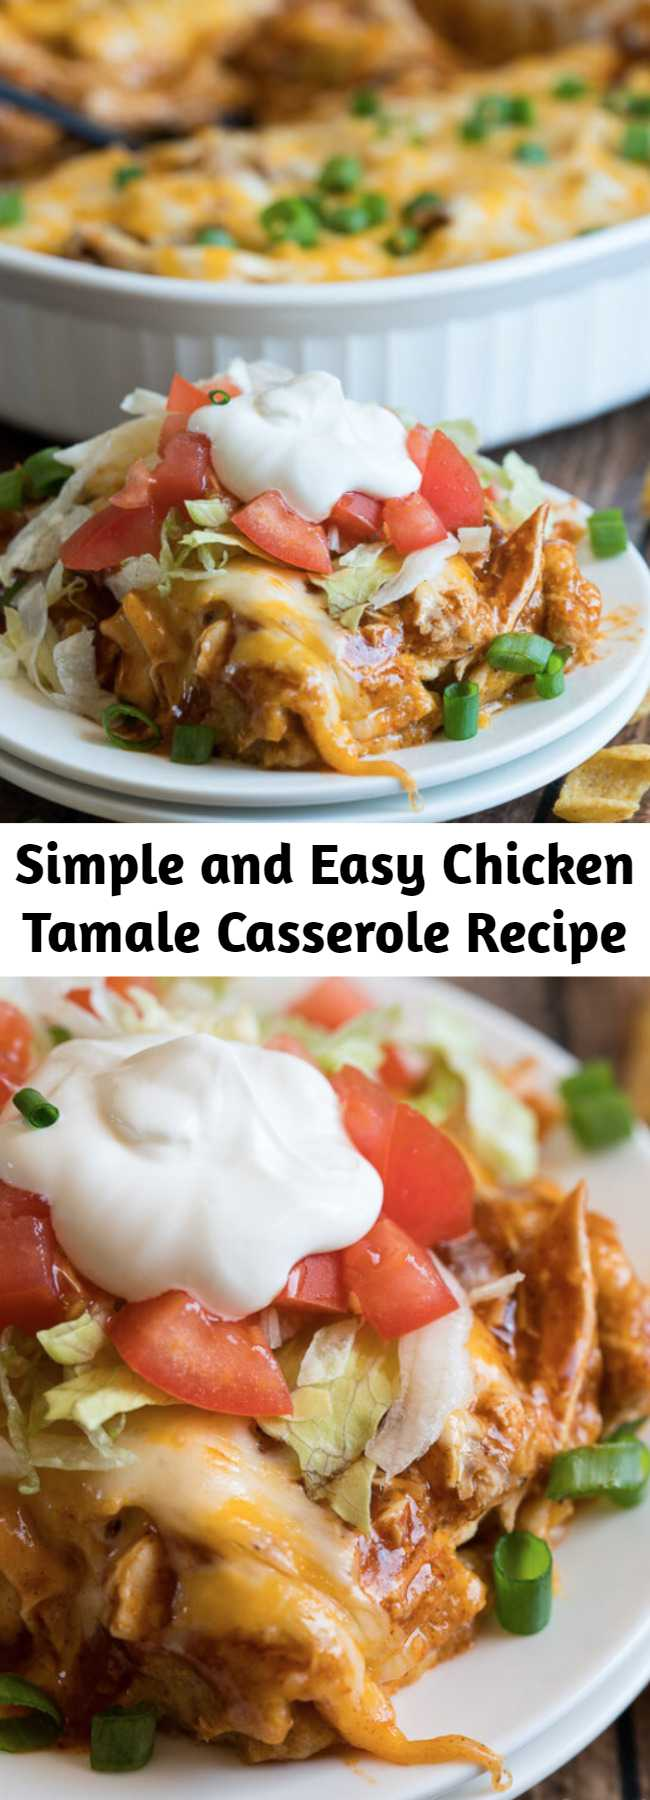 Simple and Easy Chicken Tamale Casserole Recipe - This cheesy Chicken Tamale Casserole is a quick and easy family weeknight dinner that has all the flavors of classic tamales without all the fuss!